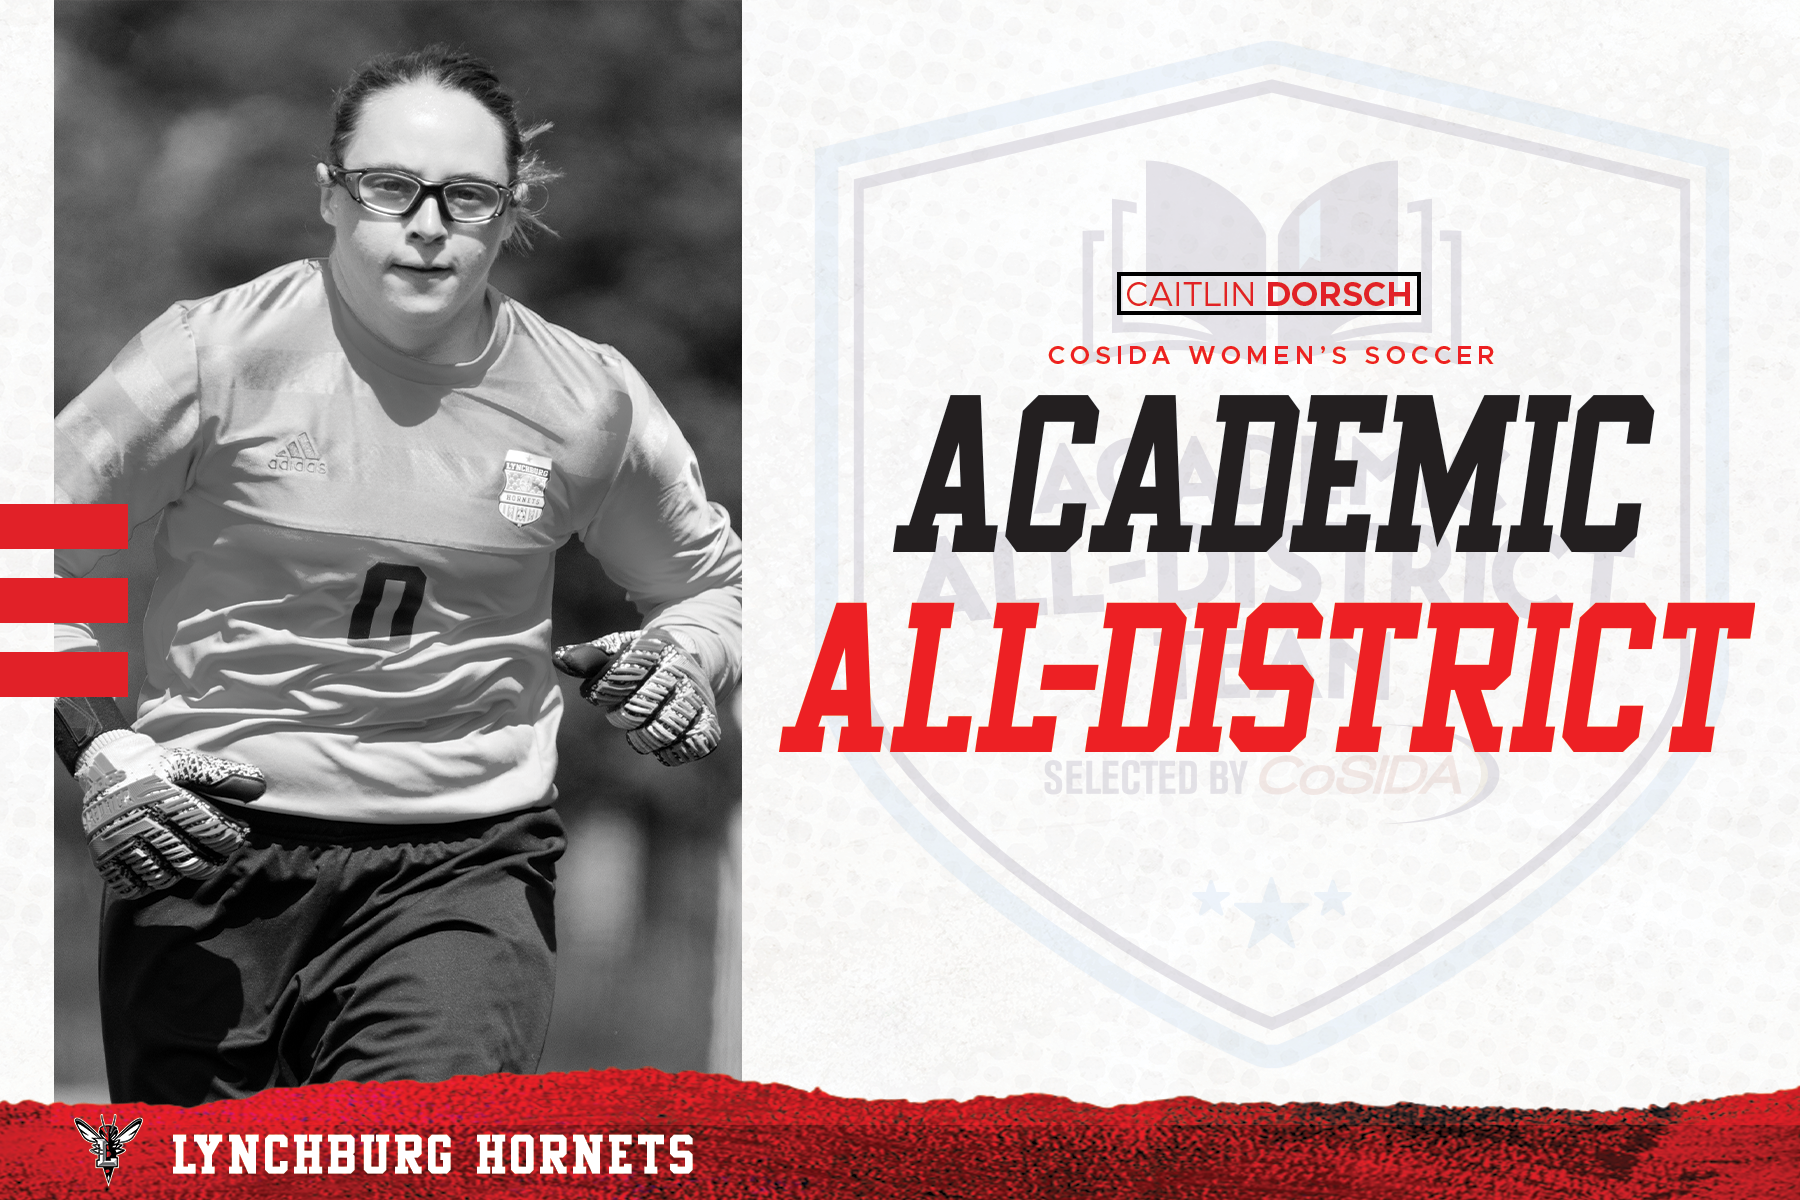 White and red CoSIDA academic all-district graphic with grayscale photo of Caitlin Dorsch in uniform at left